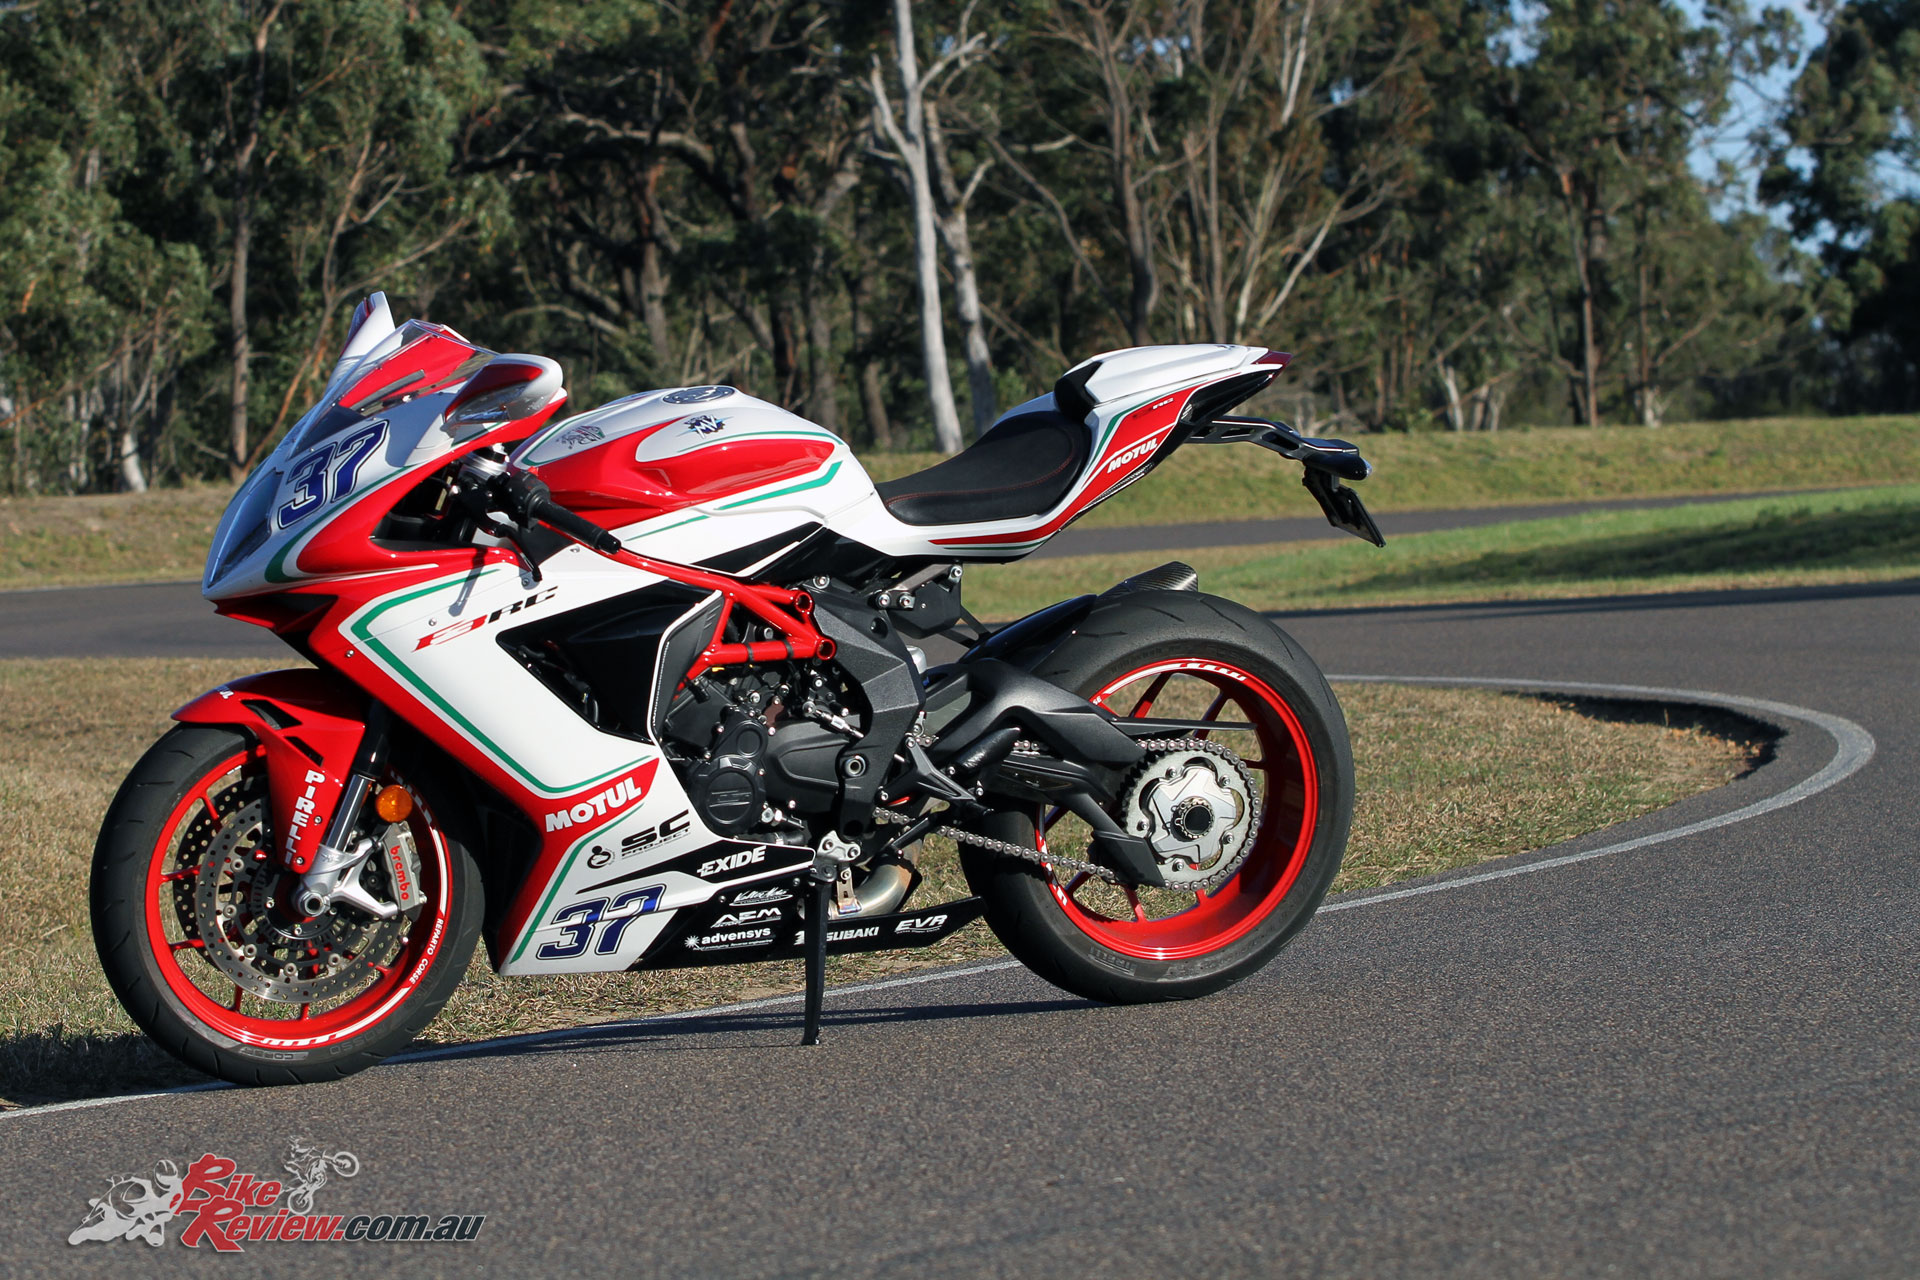 One point everyone could agree on was the 675 RC looking sensational